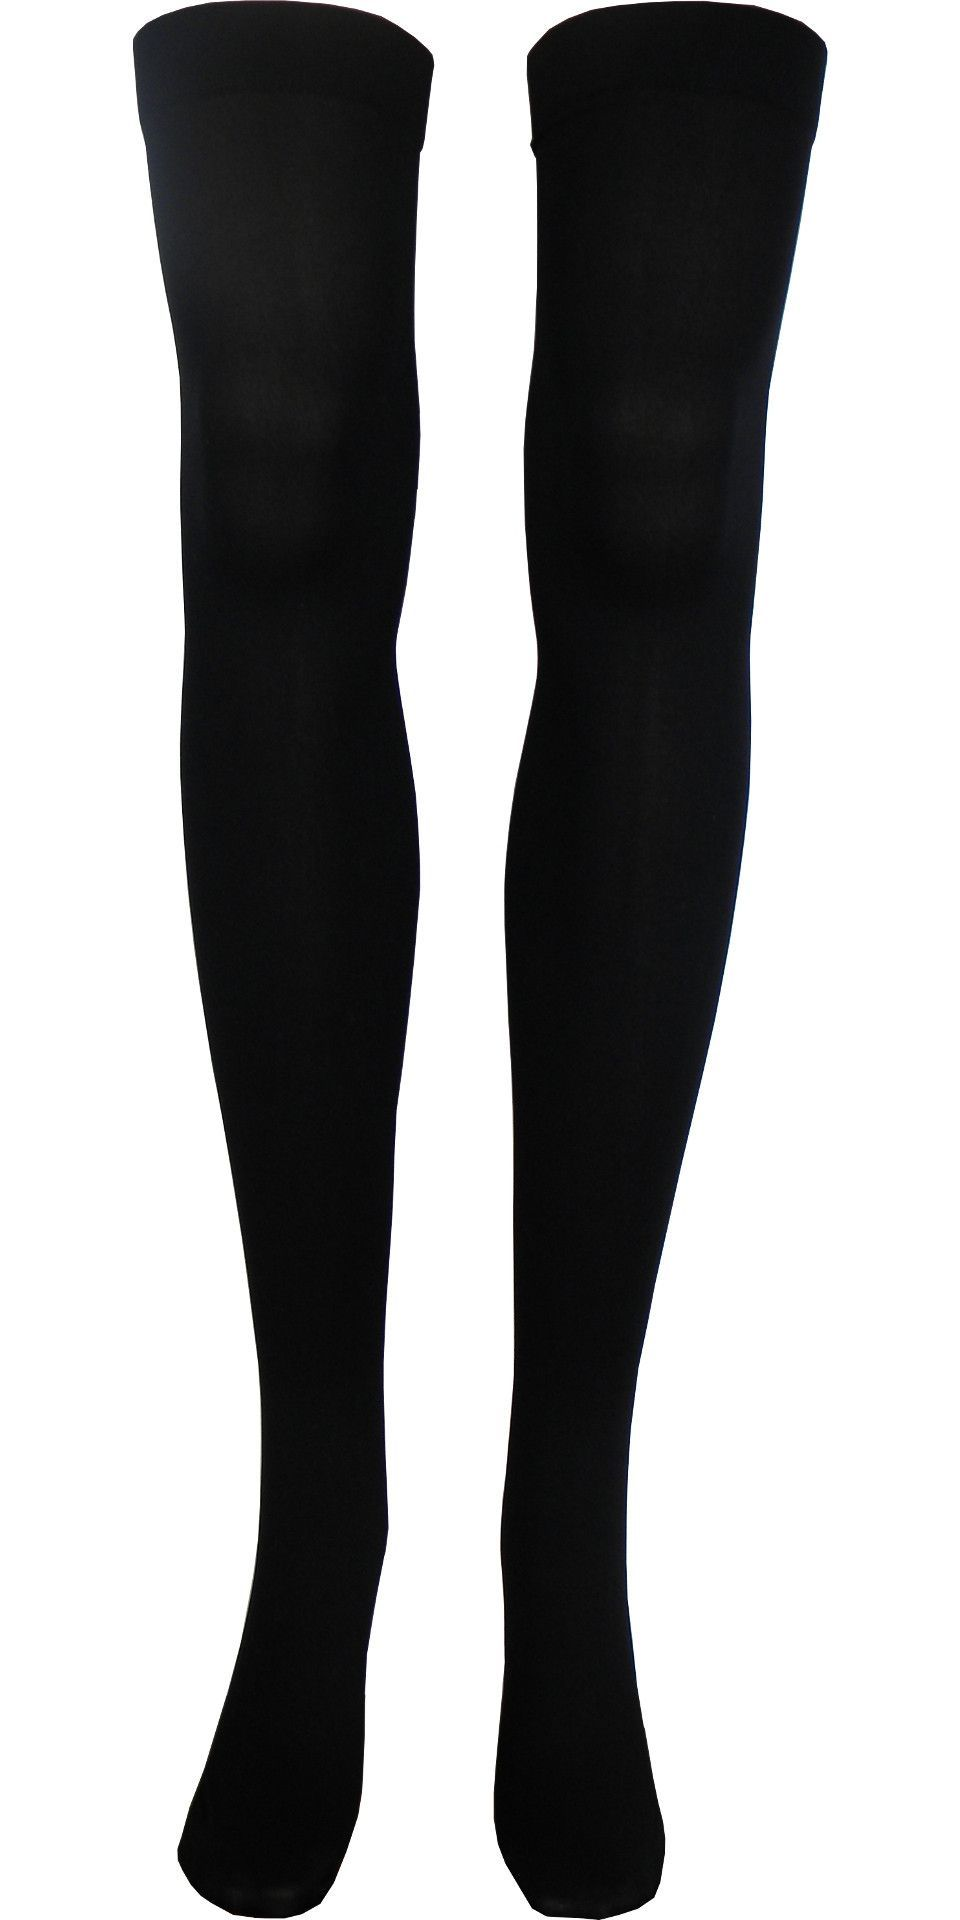 c5efa5aeb77 Solid Opaque Thigh High Socks in Black - Black   regular